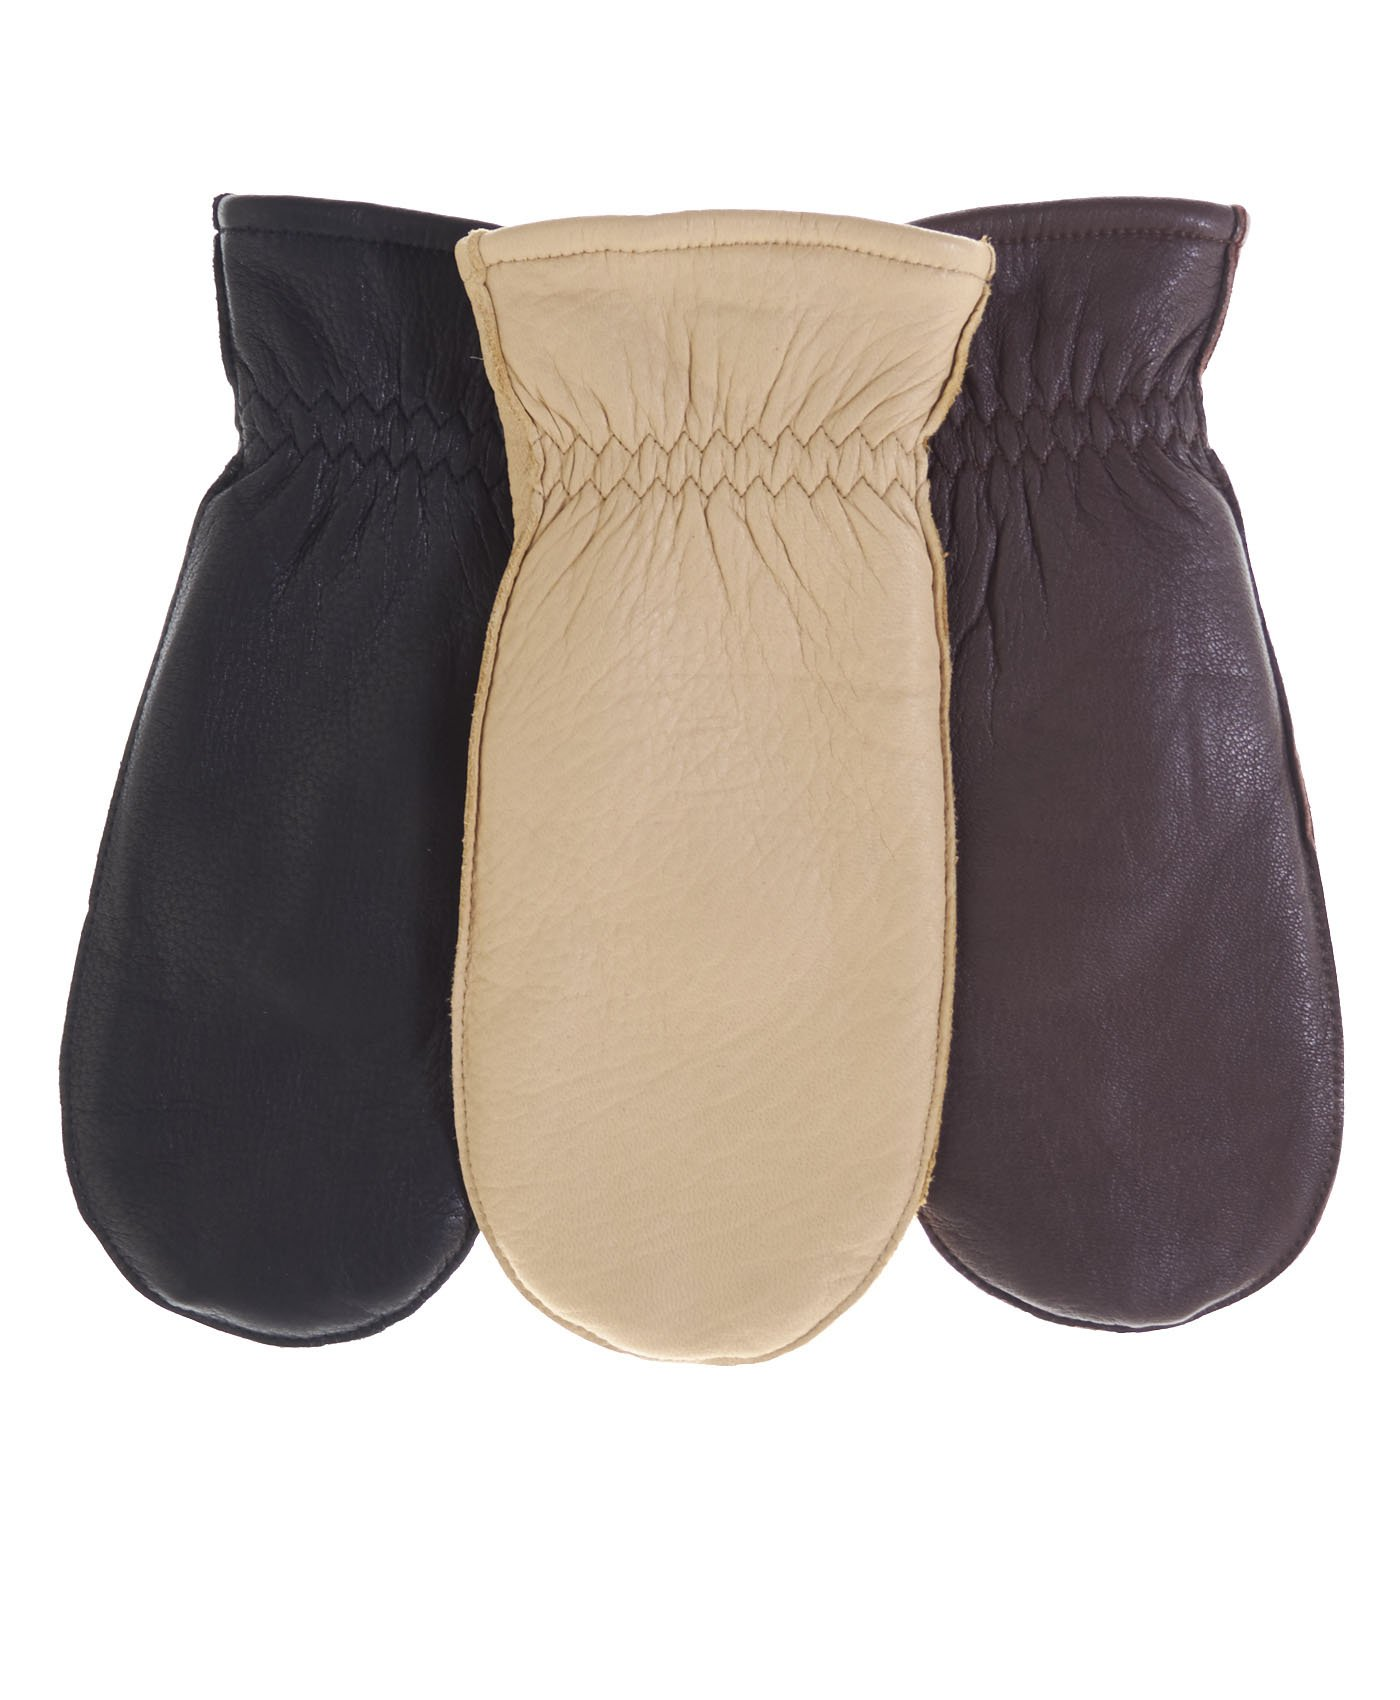 Pratt and Hart Women's Winter Deerskin Leather Mittens with Finger Liners Size M Color Black